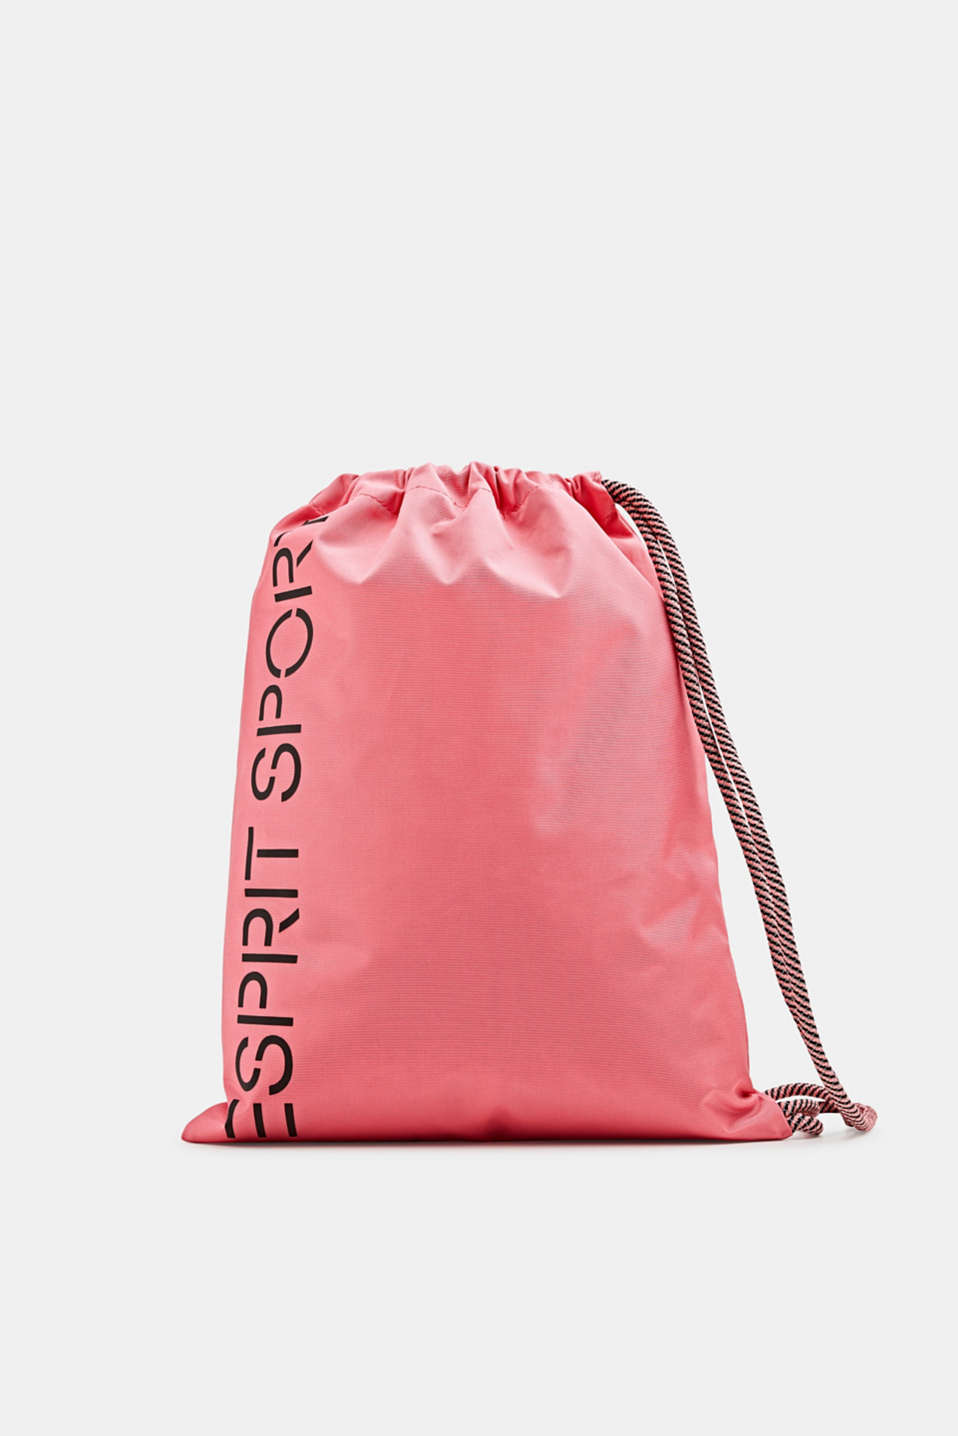 Esprit - Nylon pouch with a logo